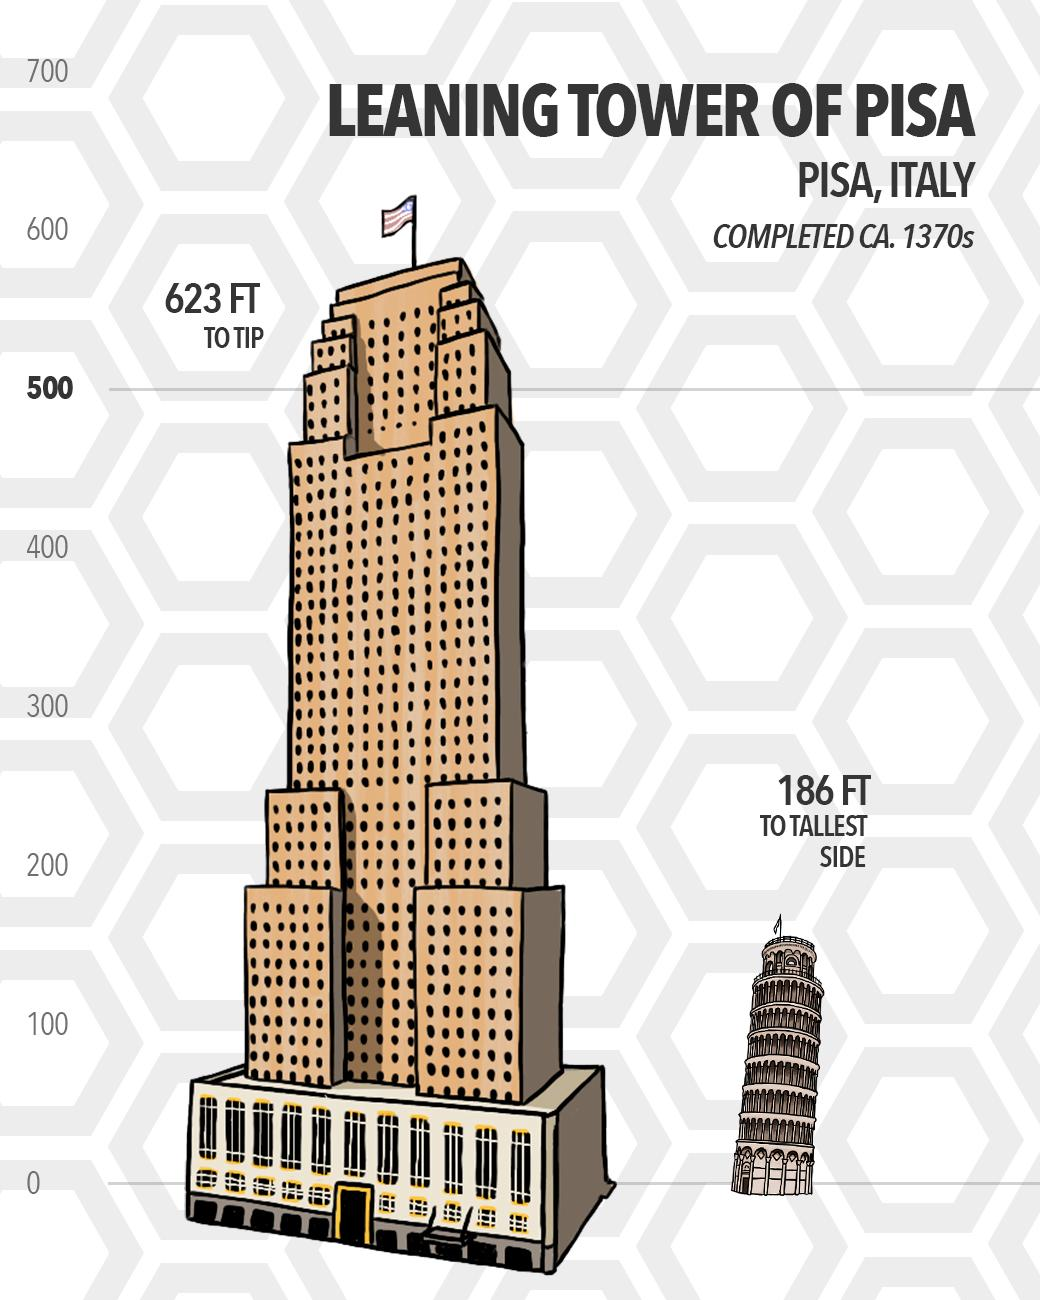 Preceding the completion of the Carew Tower by over 500 years, the Leaning Tower of Pisa in Pisa, Italy stands 186 feet tall on its highest side. In total, over three leaning towers would account for the height of the Carew Tower if stacked on top of each other, though we wouldn't recommend stacking leaning towers that high. (Source: TowerOfPisa.org) / Image: Phil Armstrong // Published: 5.15.19